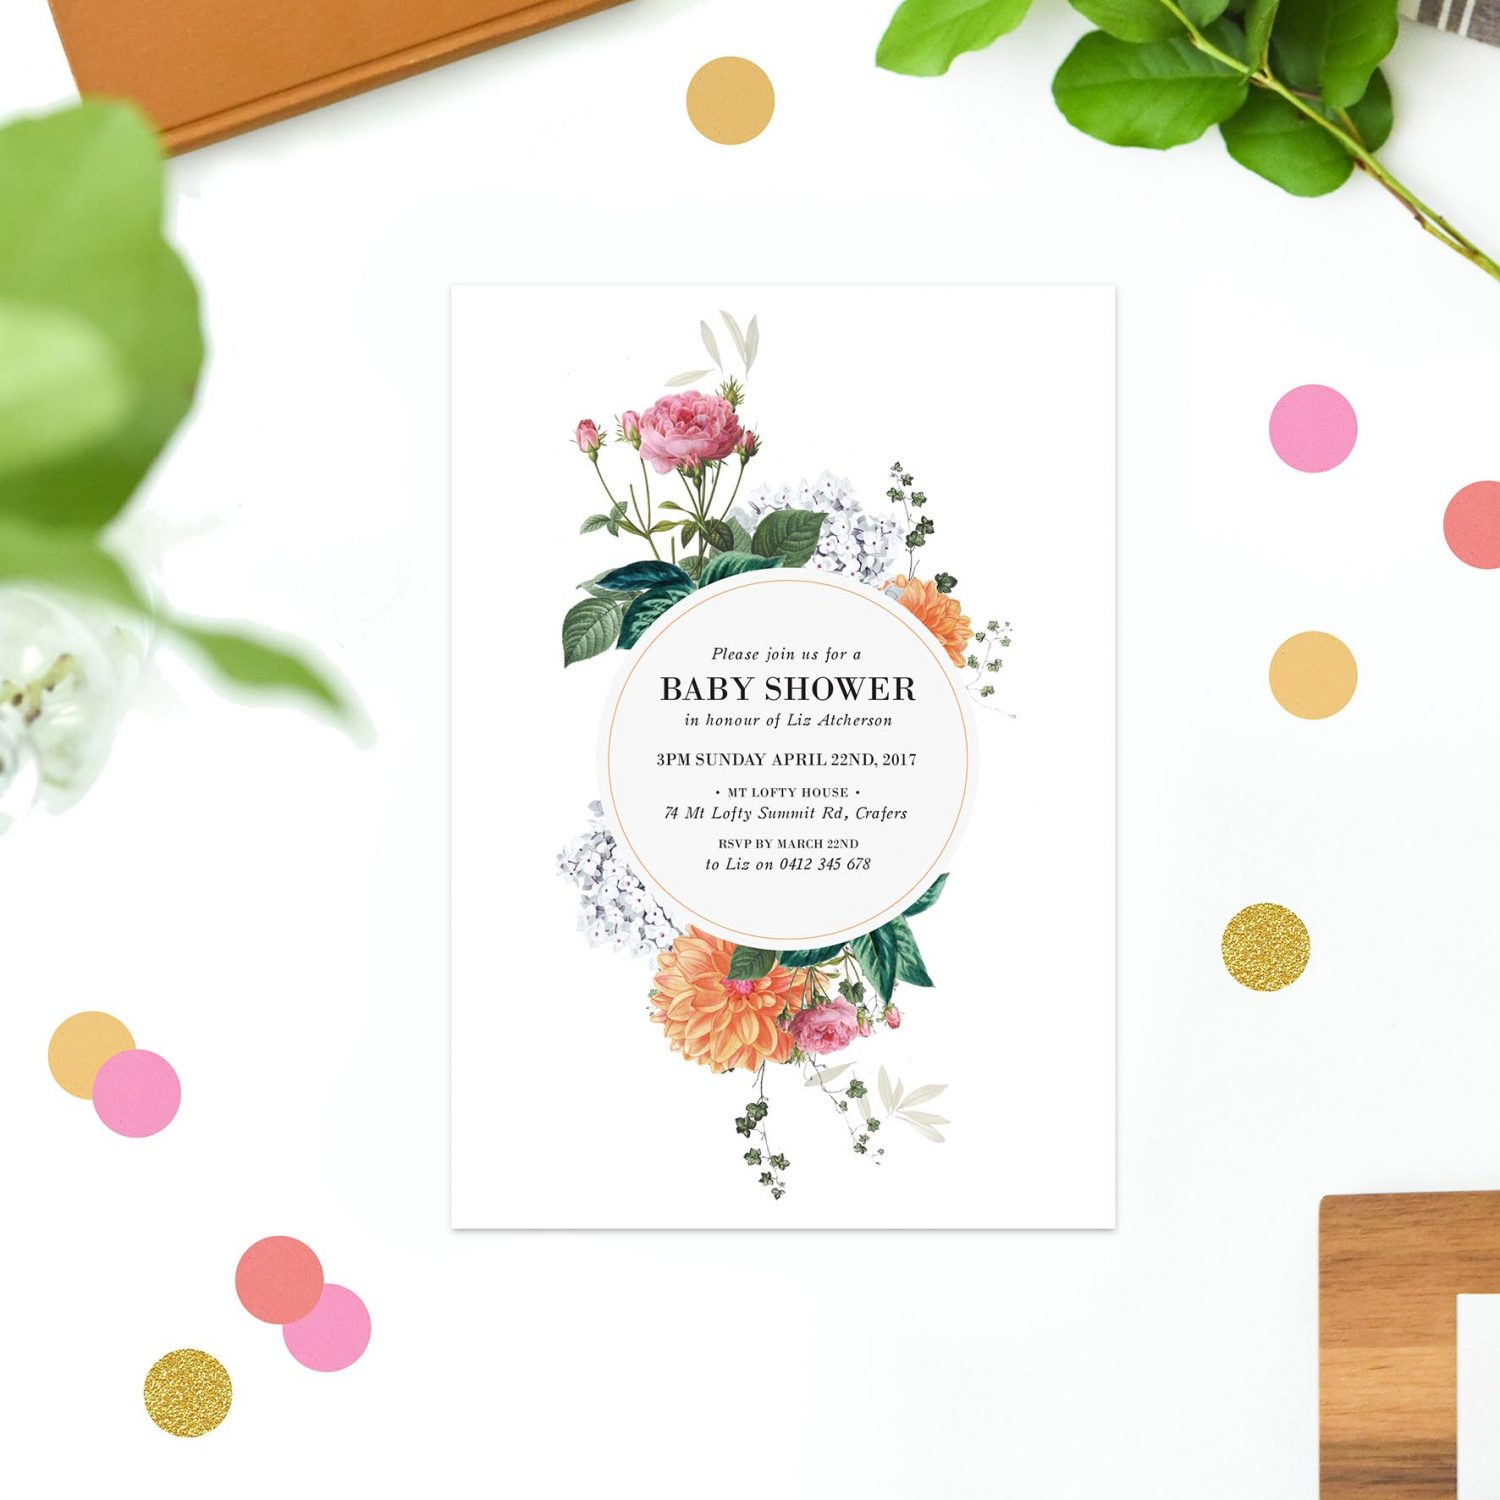 Clover Baby Shower Invitations - by Sail and Swan